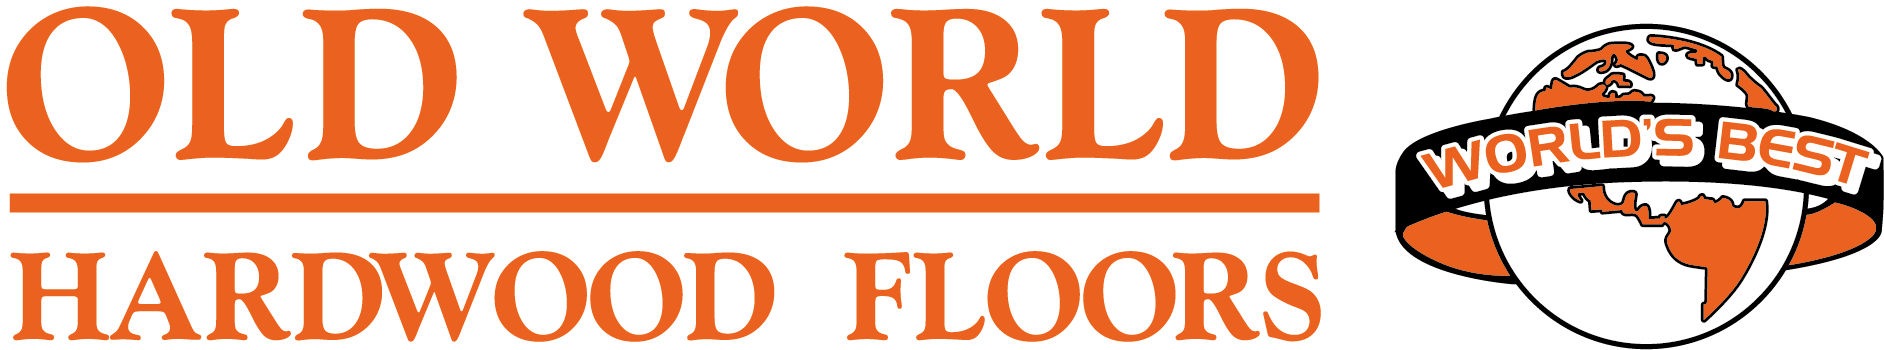 Old World Hardwood Floors